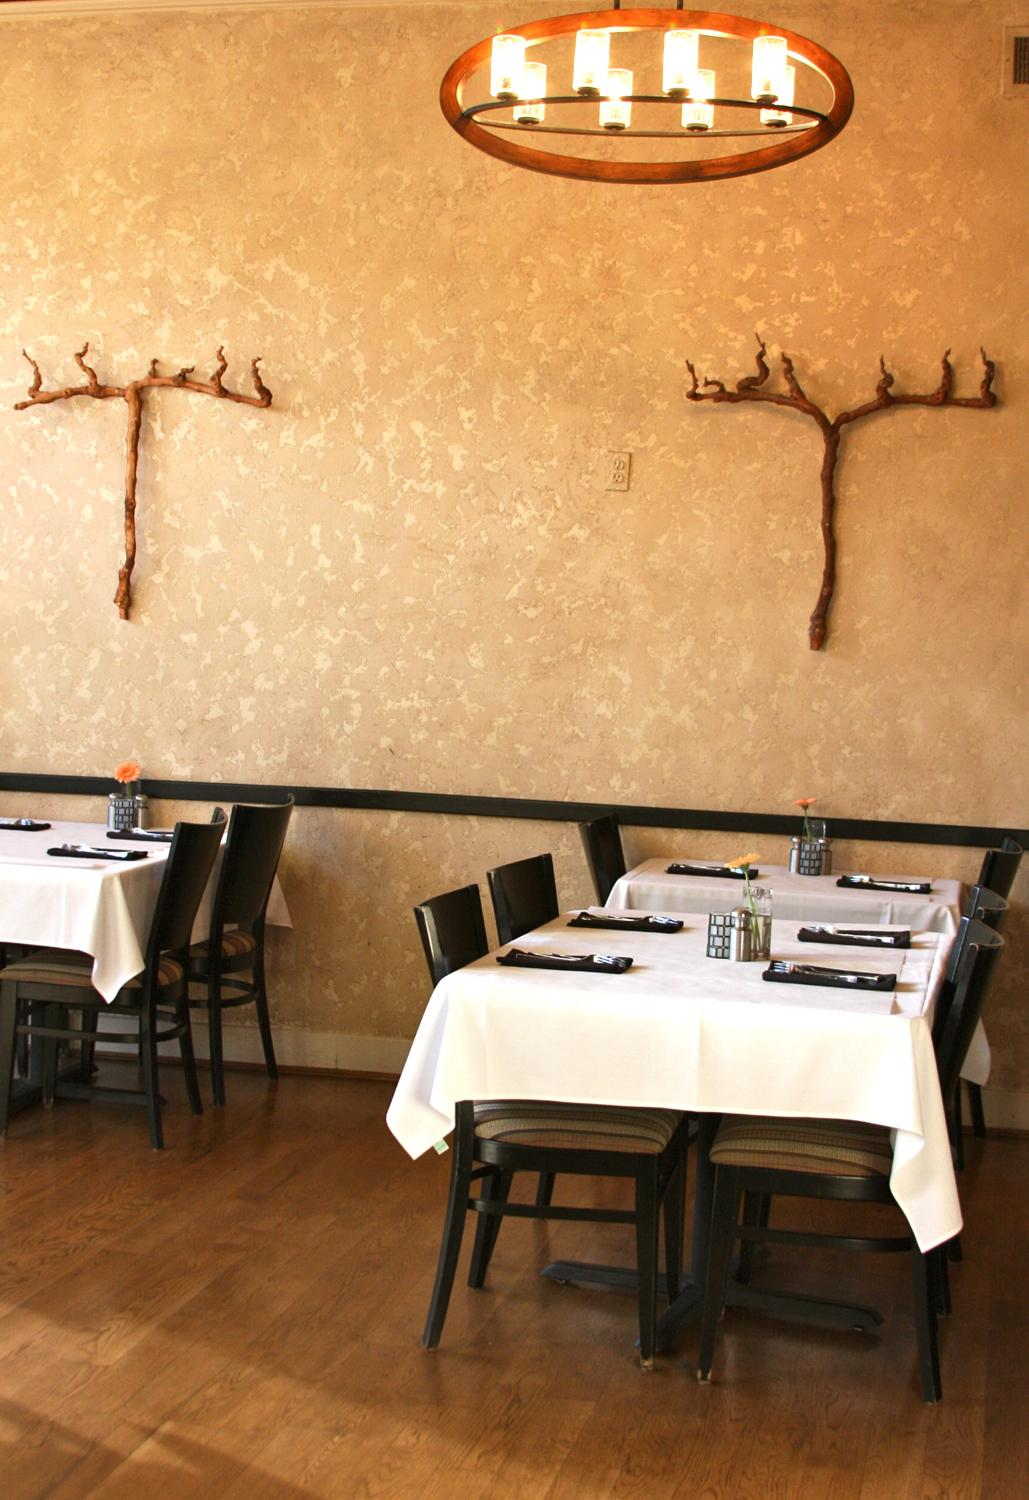 Tano Bistro offers international-inspired cuisine with a contemporary twist. Set within a historic building in the center of Loveland, the bistro features meals made with high quality, fresh ingredients locally sourced from farmers and artisans they trust. ADDRESS: 204 West Loveland Avenue, Loveland, Ohio 45140 / Image: Molly Paz / Published: 11.22.16